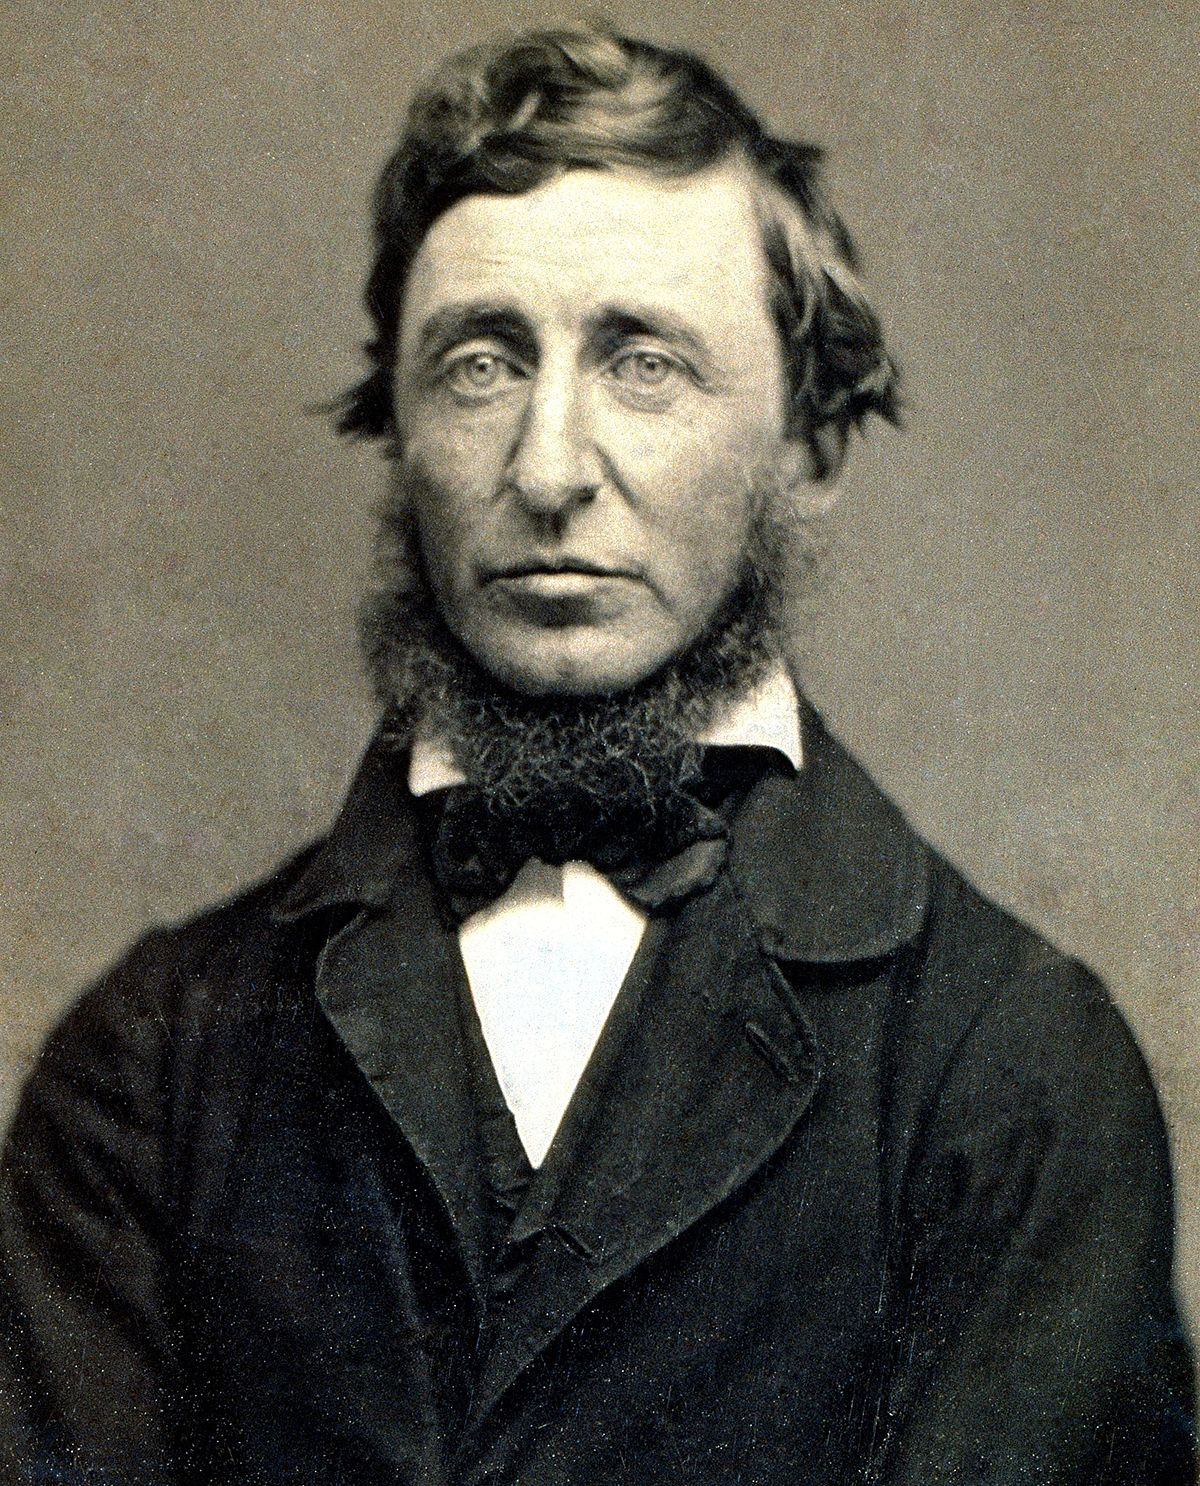 Henry David Thoreau Reenactor Coming In May  The Granville  Henry David Thoreau Reenactor Coming In May  The Granville Historical  Society English Sample Essays also Term Paper Essays Essay On English Teacher